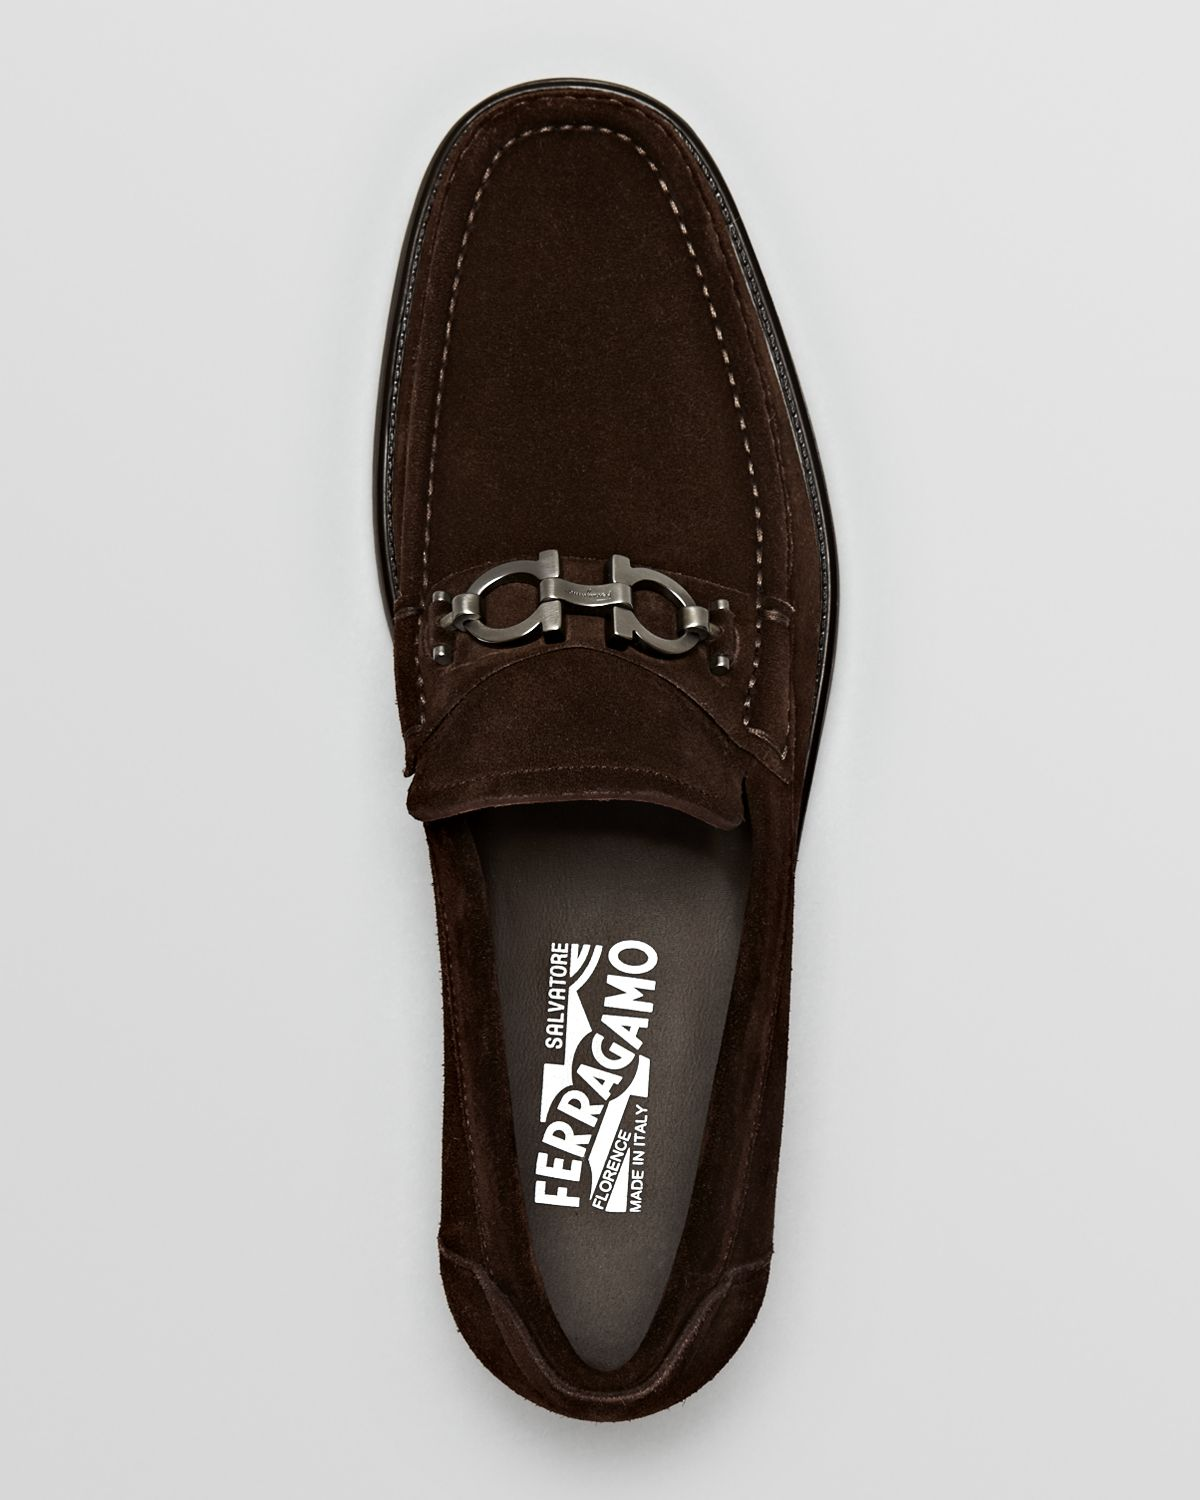 39b2cd40bf0 Lyst - Ferragamo Master Suede Loafers in Brown for Men